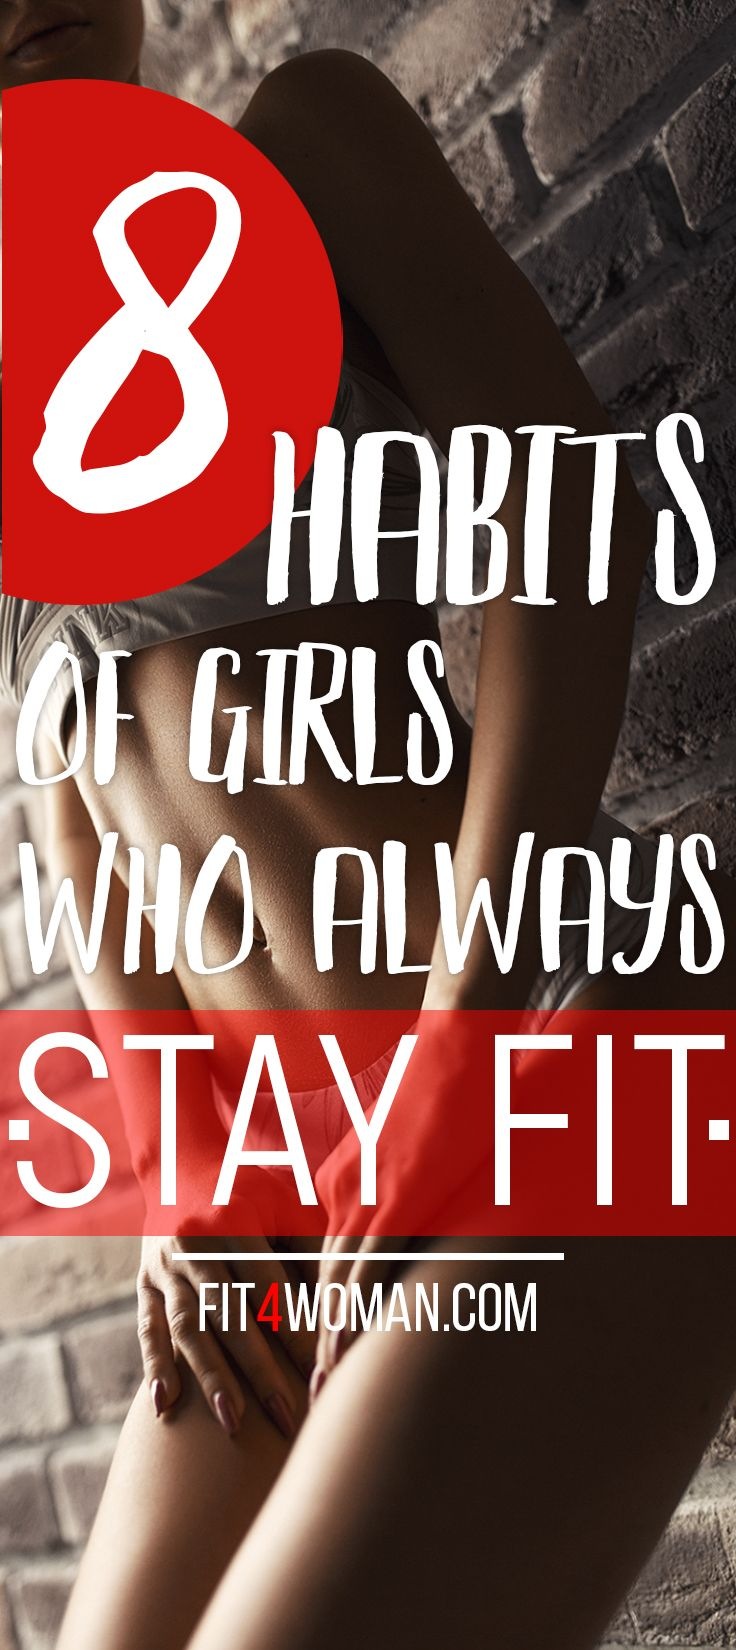 Looking for a fit girls guide? Here are 8 habits by girls who always stay fit! #stayfit #fitness #fi...